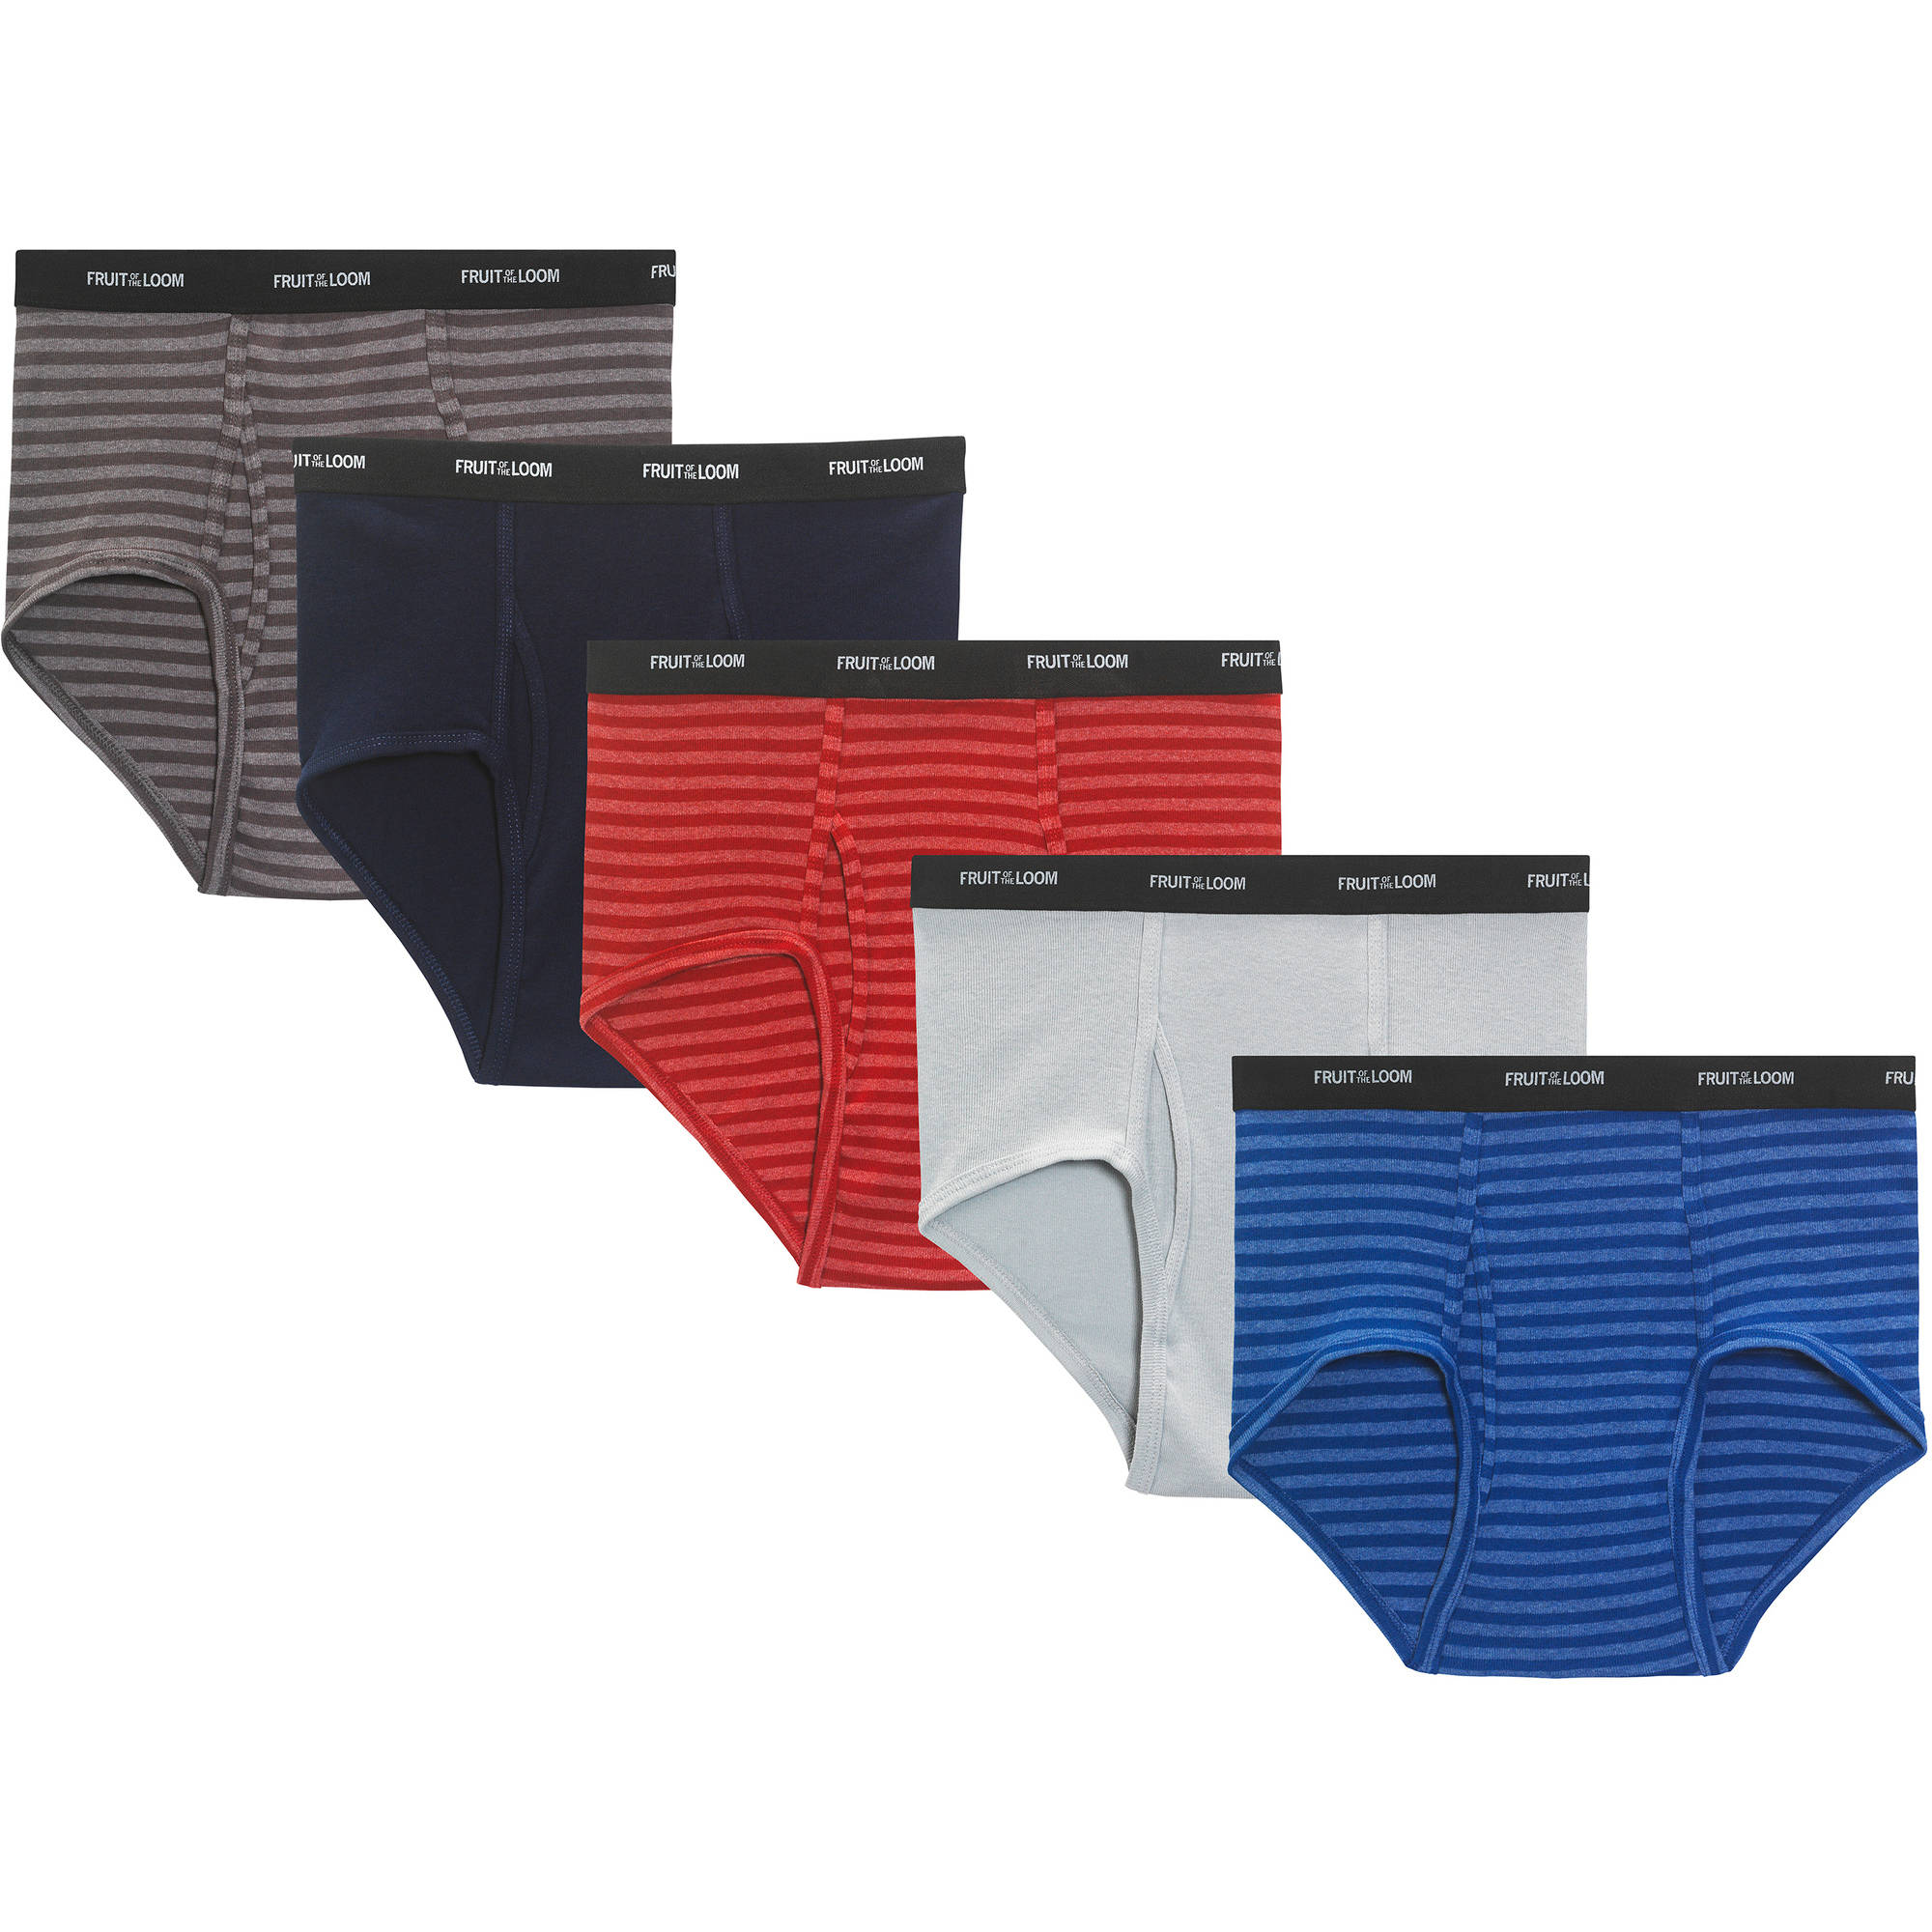 Fruit of the Loom Big Men's Stripes and Solids Fashion Briefs, 5-Pack by Fruit of the Loom